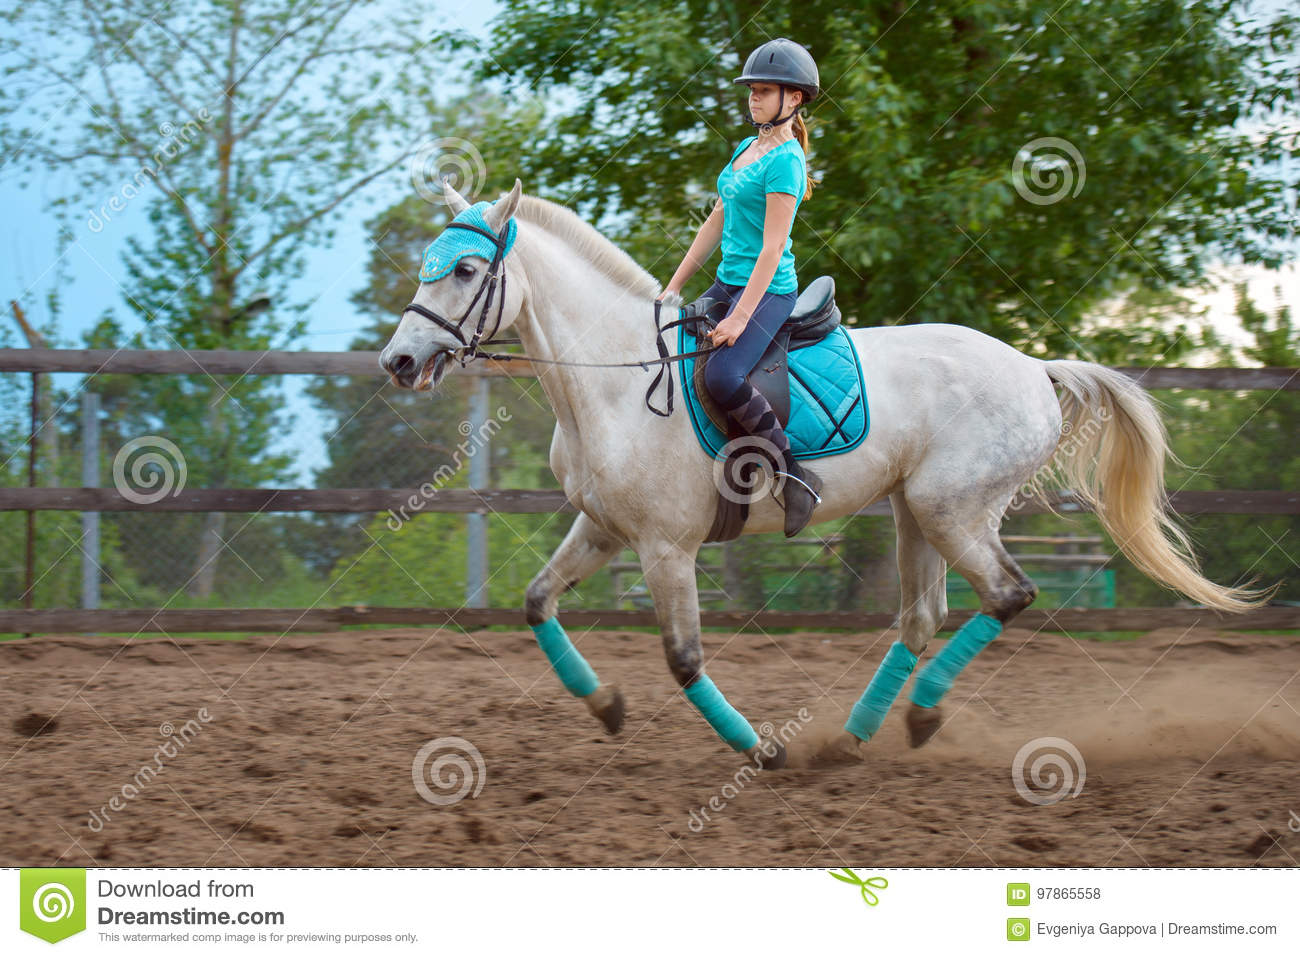 girl rider trains the horse in the riding course in summer day stockgirl rider trains the horse in the riding course in summer day